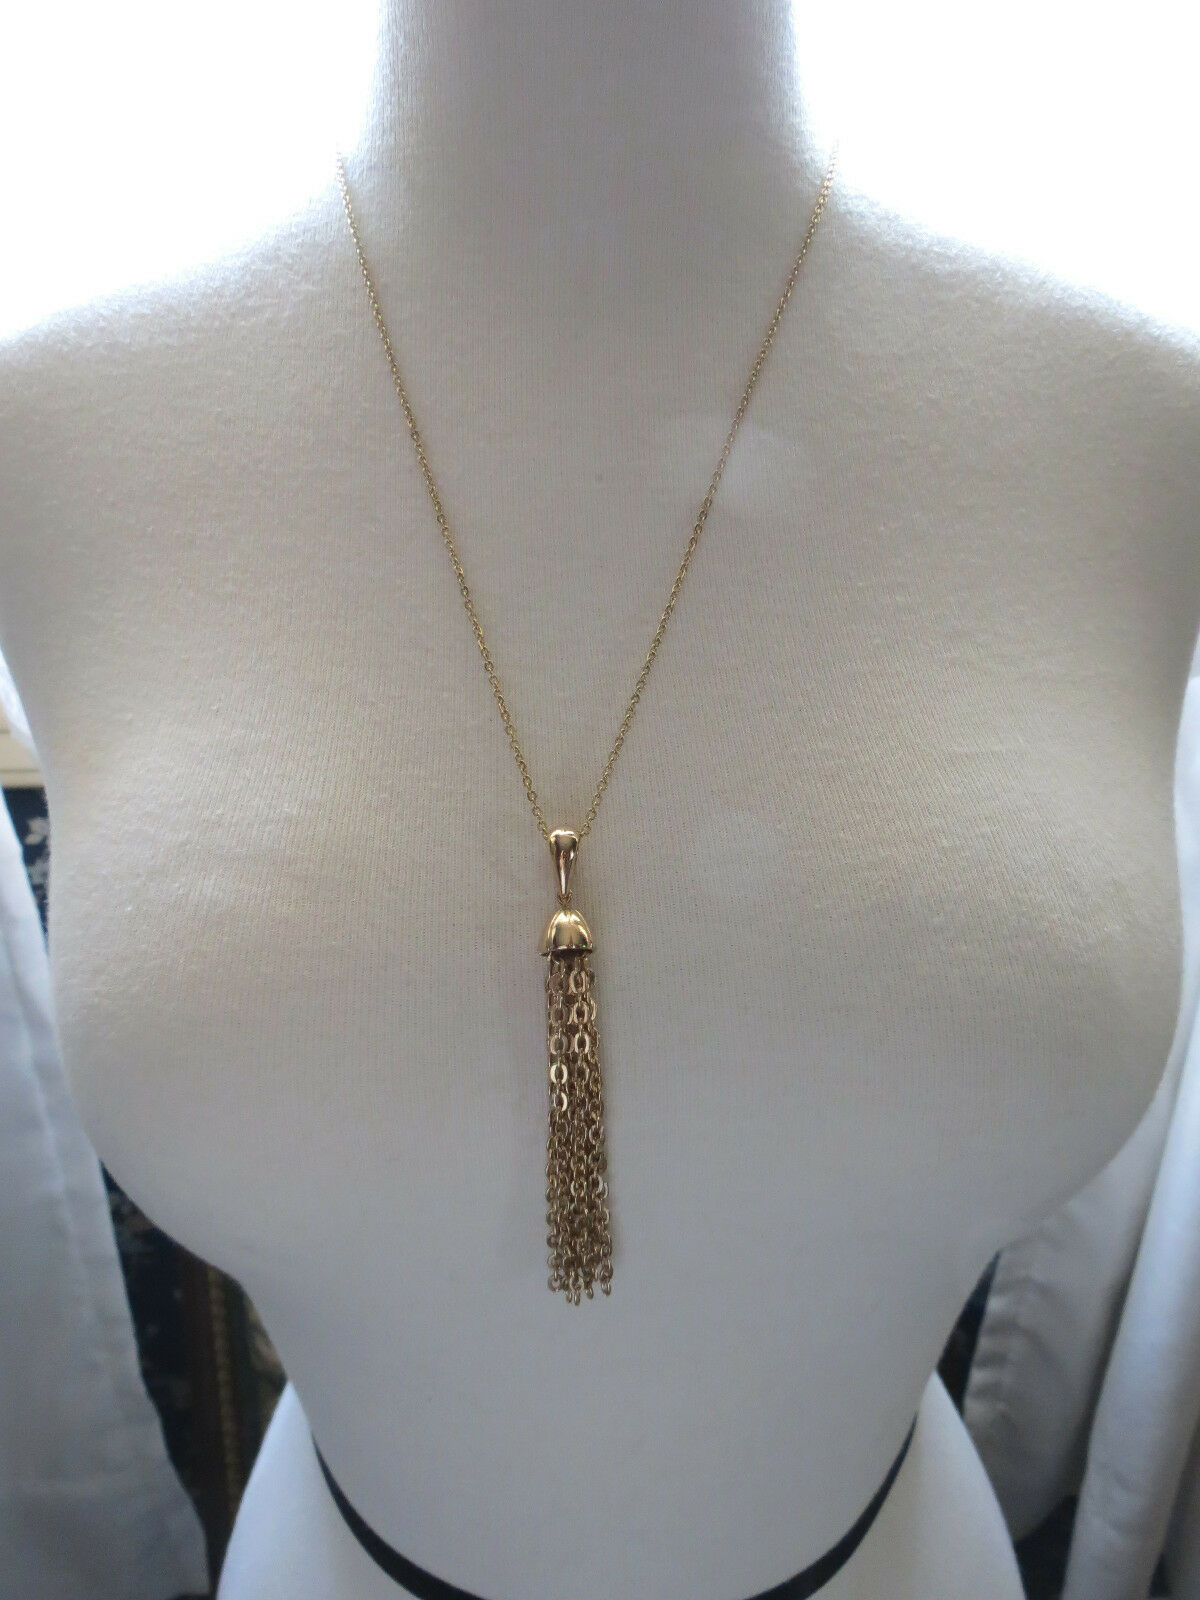 """VTG Sarah Coventry Chain Necklace Tassel Pendant Gold Plated 23"""" Smooth Finish"""